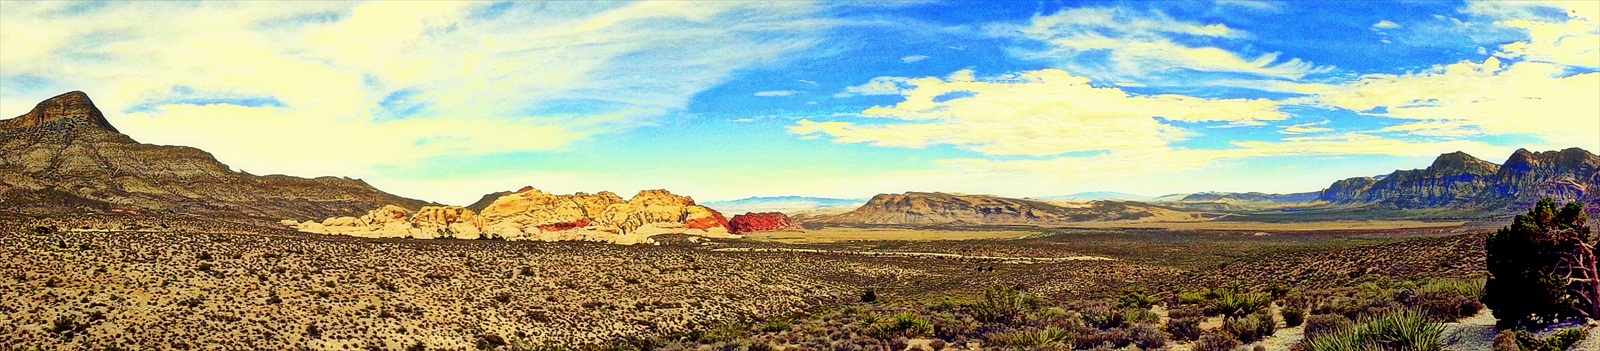 red rock canyon III